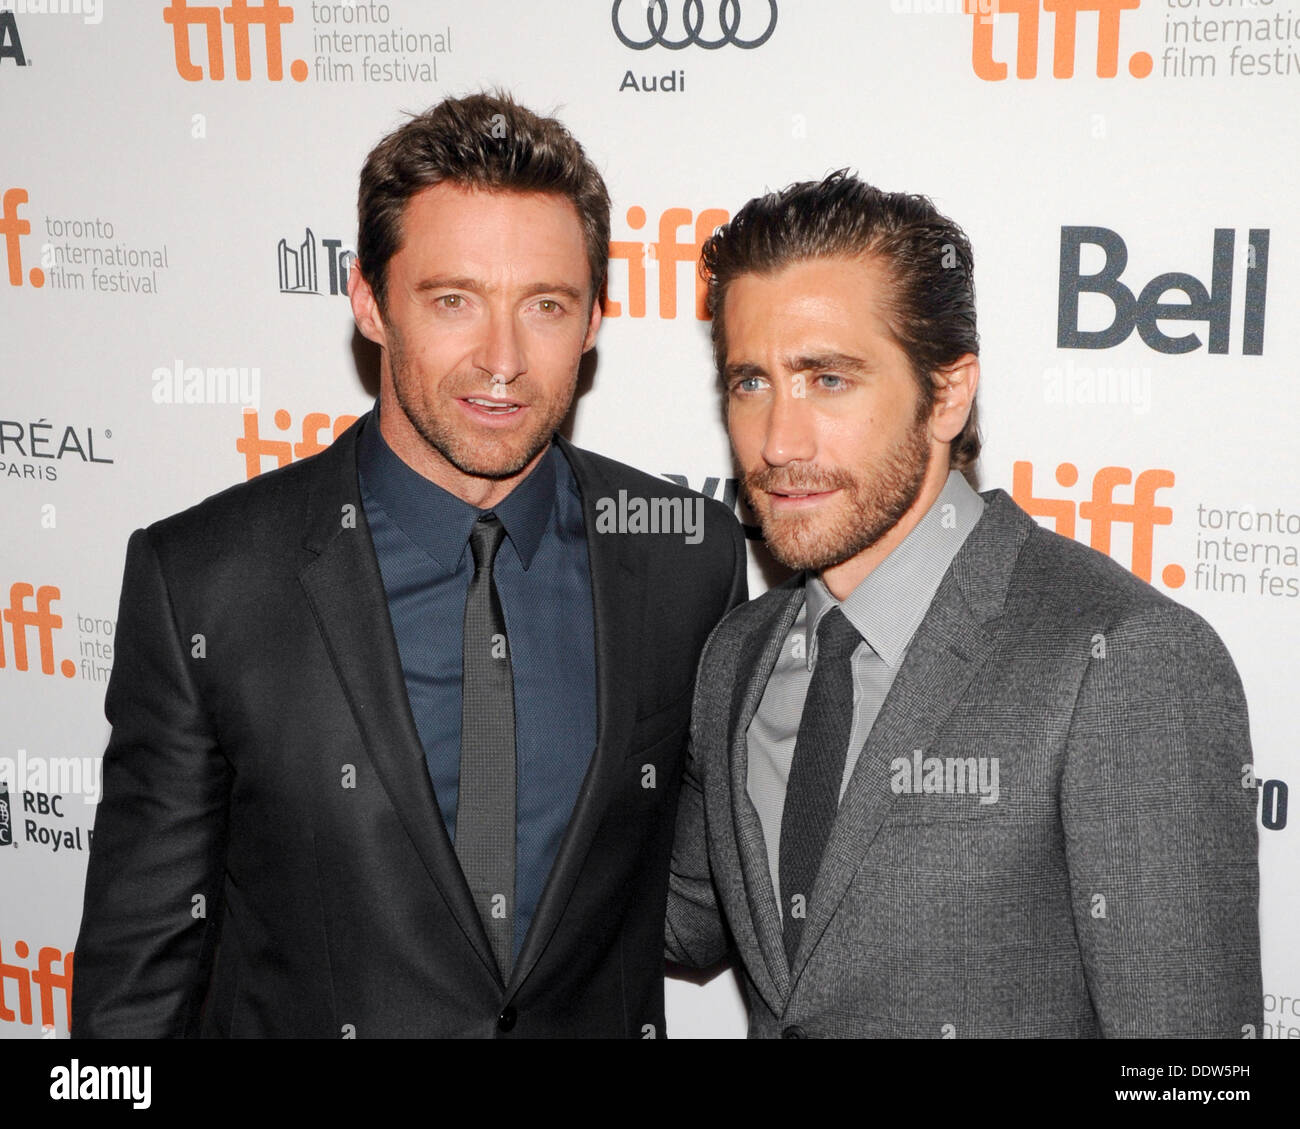 Toronto, Ontario, Canada. 6th Sep, 2013. Actors HUGH JACKMAN and JAKE GYLLENHAAL arrive at the 'Prisoners' Premiere during the 2013 Toronto International Film Festival held at The Elgin on September 6, 2013 in Toronto, Canada Credit:  Igor Vidyashev/ZUMAPRESS.com/Alamy Live News - Stock Image